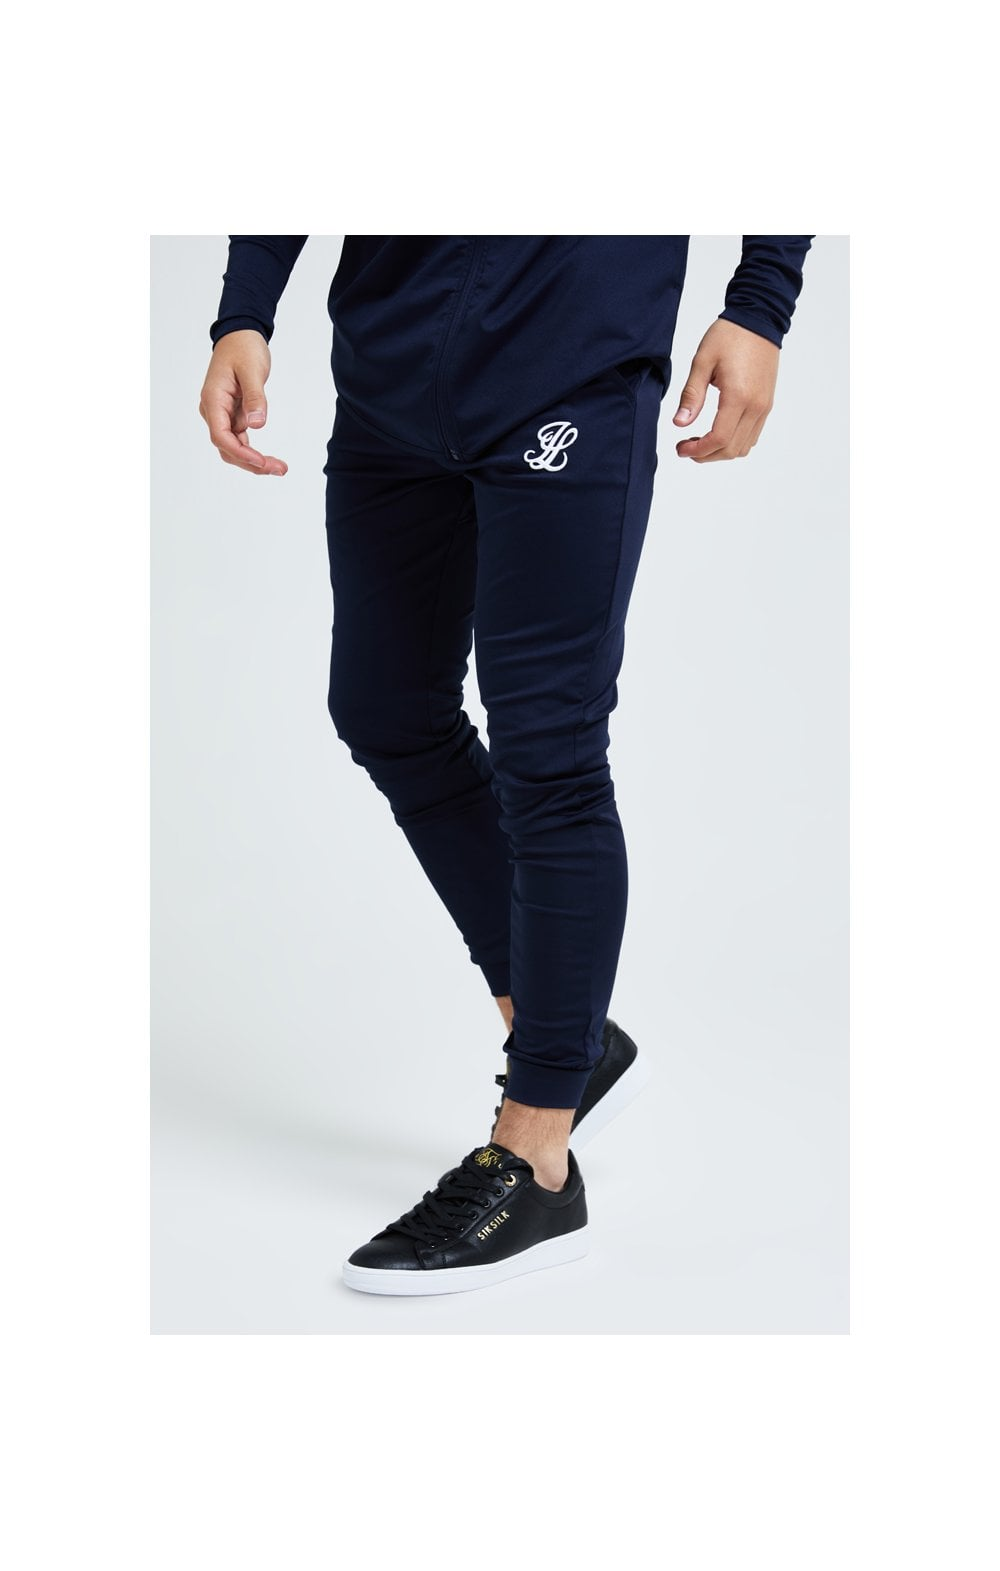 Illusive London Core Fitted Joggers - Navy (1)